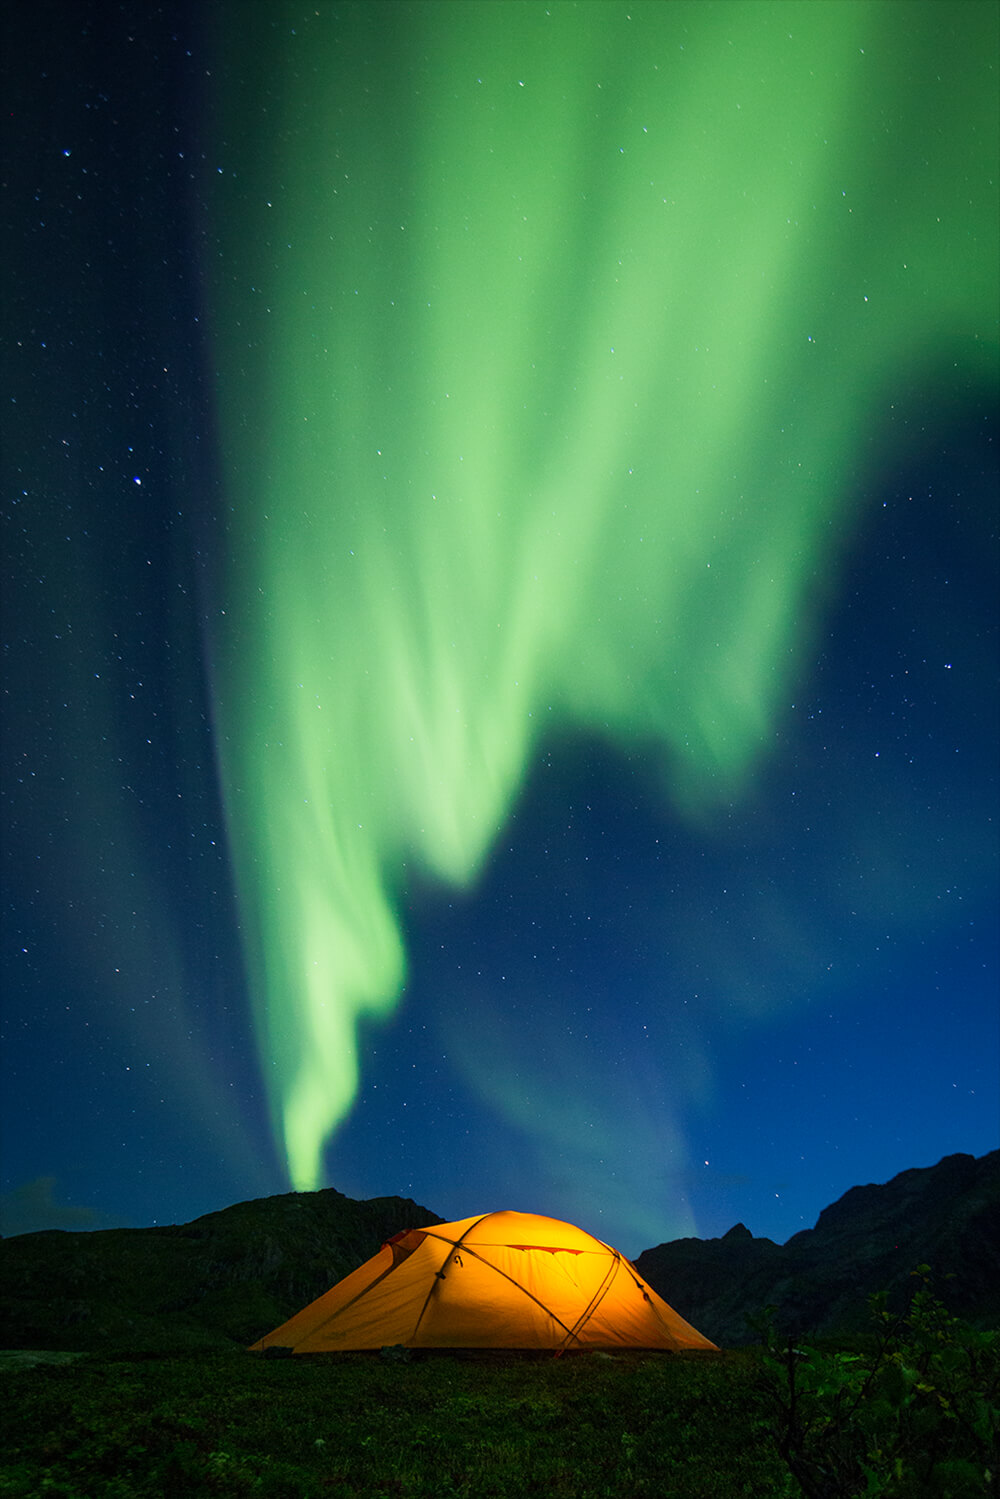 photo of a camping tent under the Northern Lights. Image by Neil Bloem